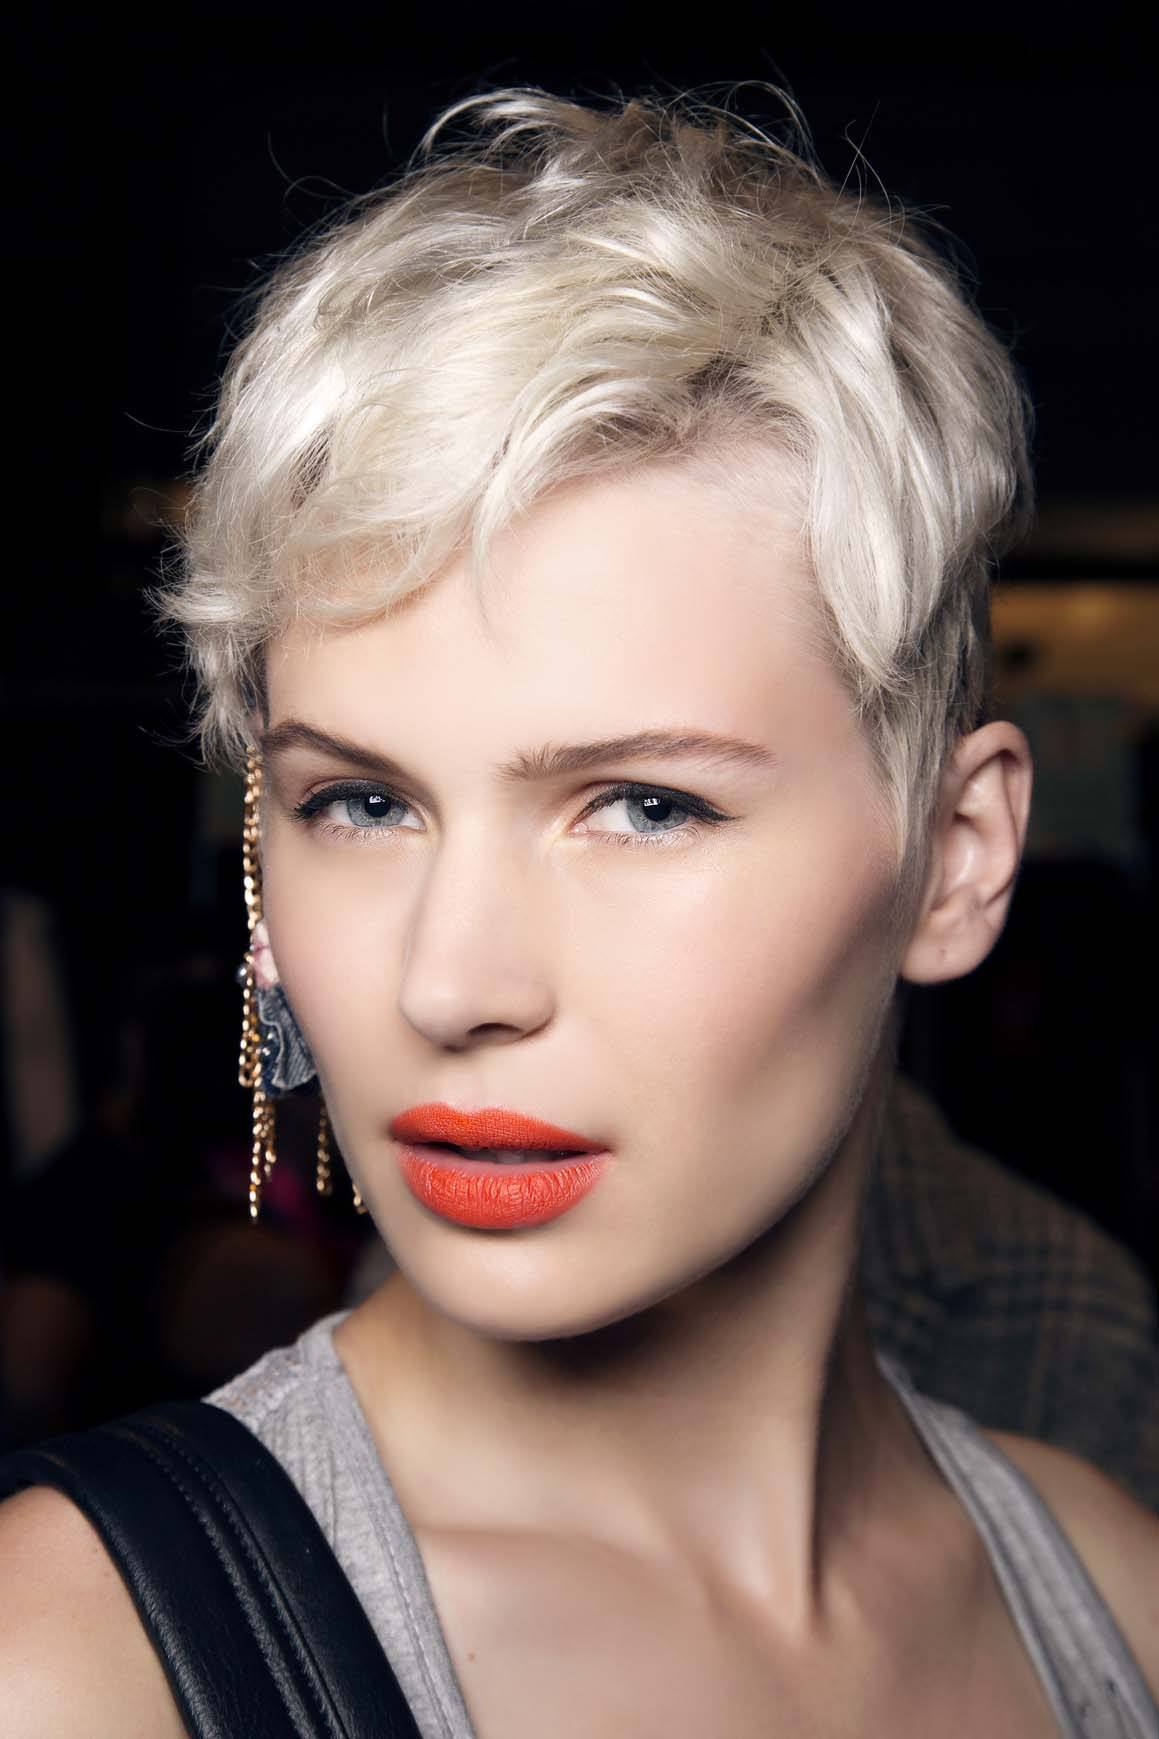 best short haircuts for women: model with platinum blonde pixie hair